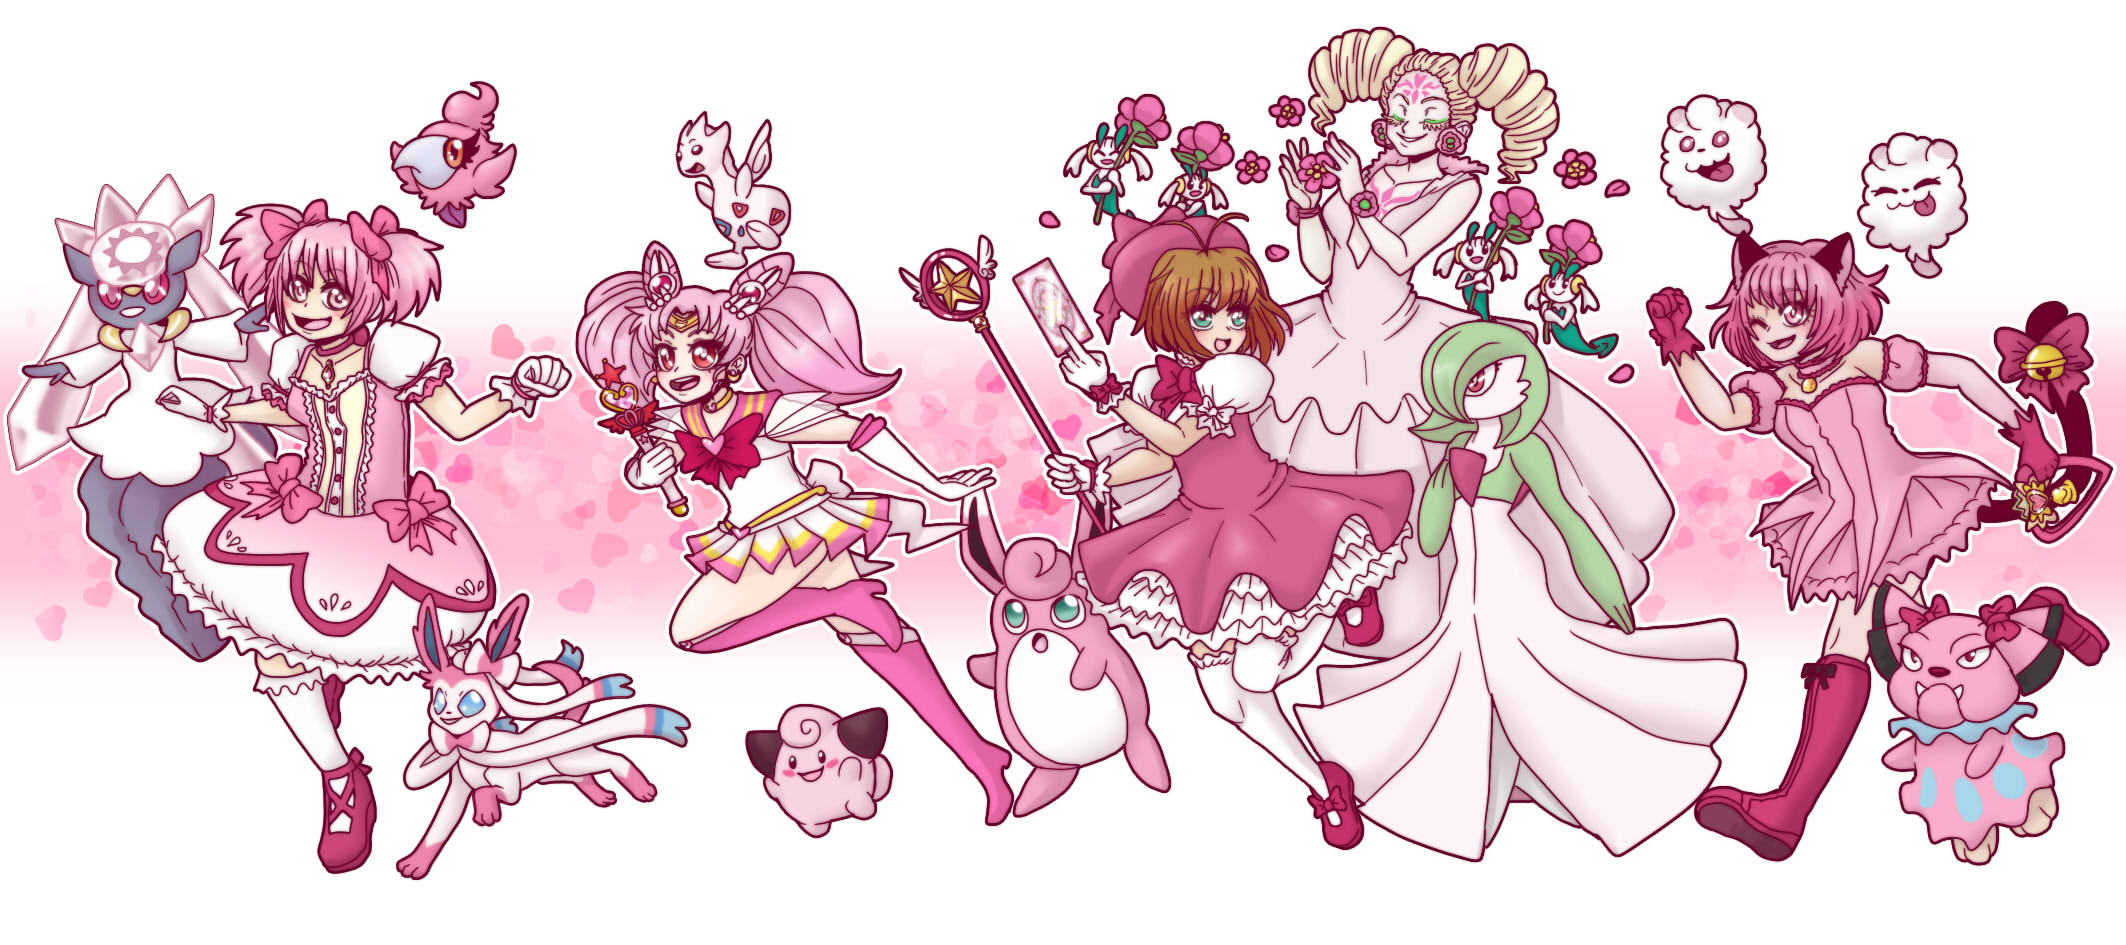 Fairy Type Pokemon Coloring Pages Images | Pokemon Images